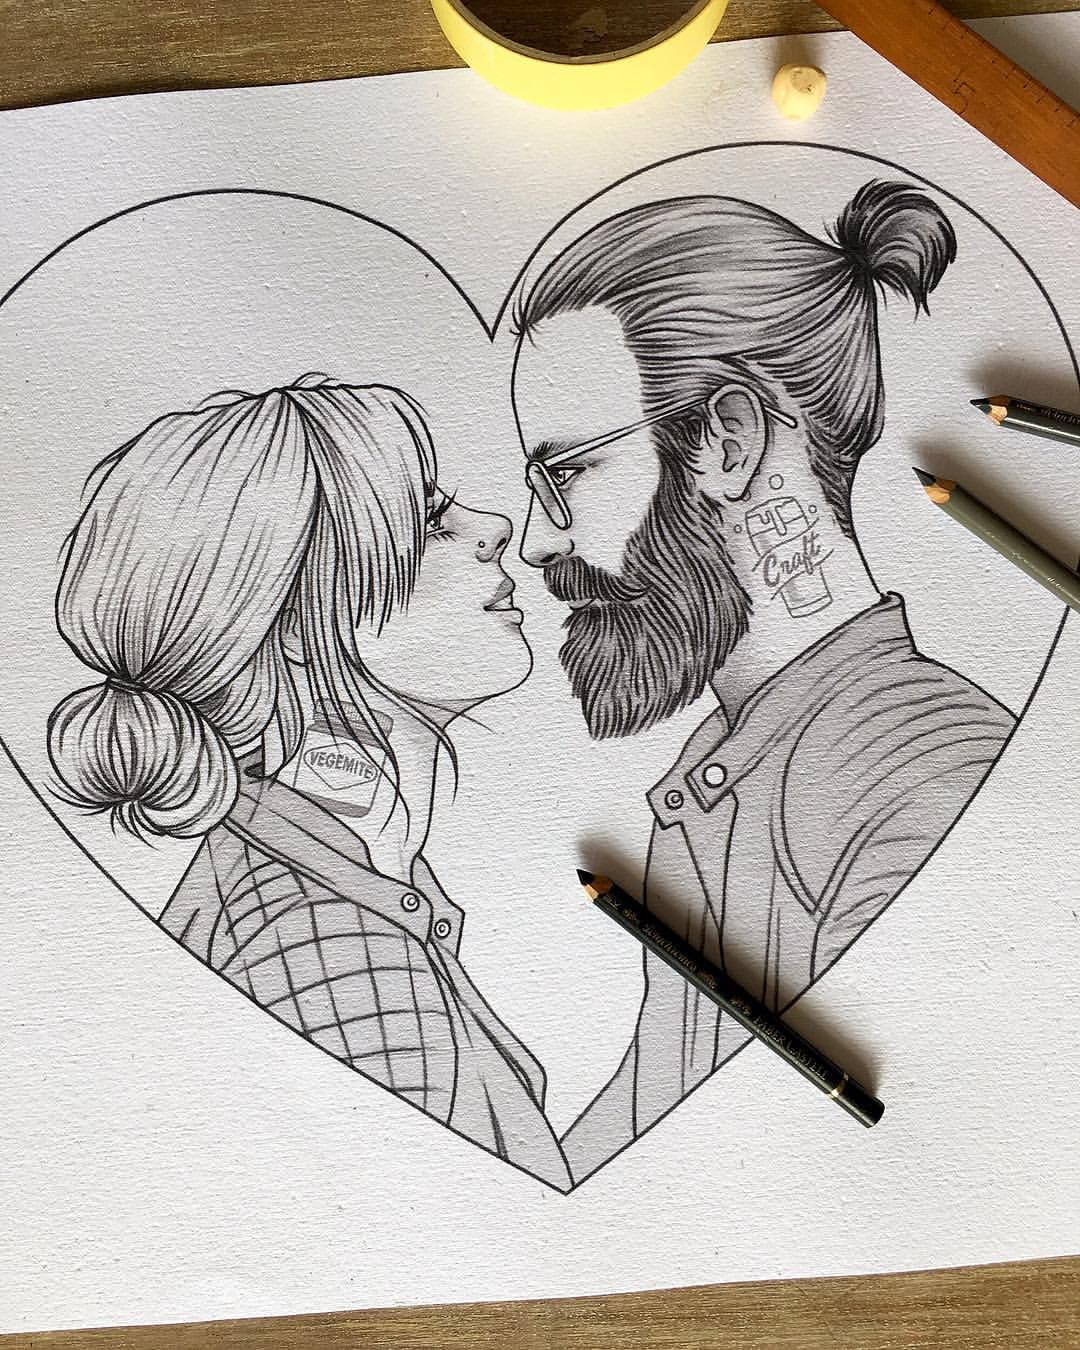 Currently sketching a cute couples portrait wedding gift for legends zoe and levi riklee illustration portrait art drawing couple wedding kiss